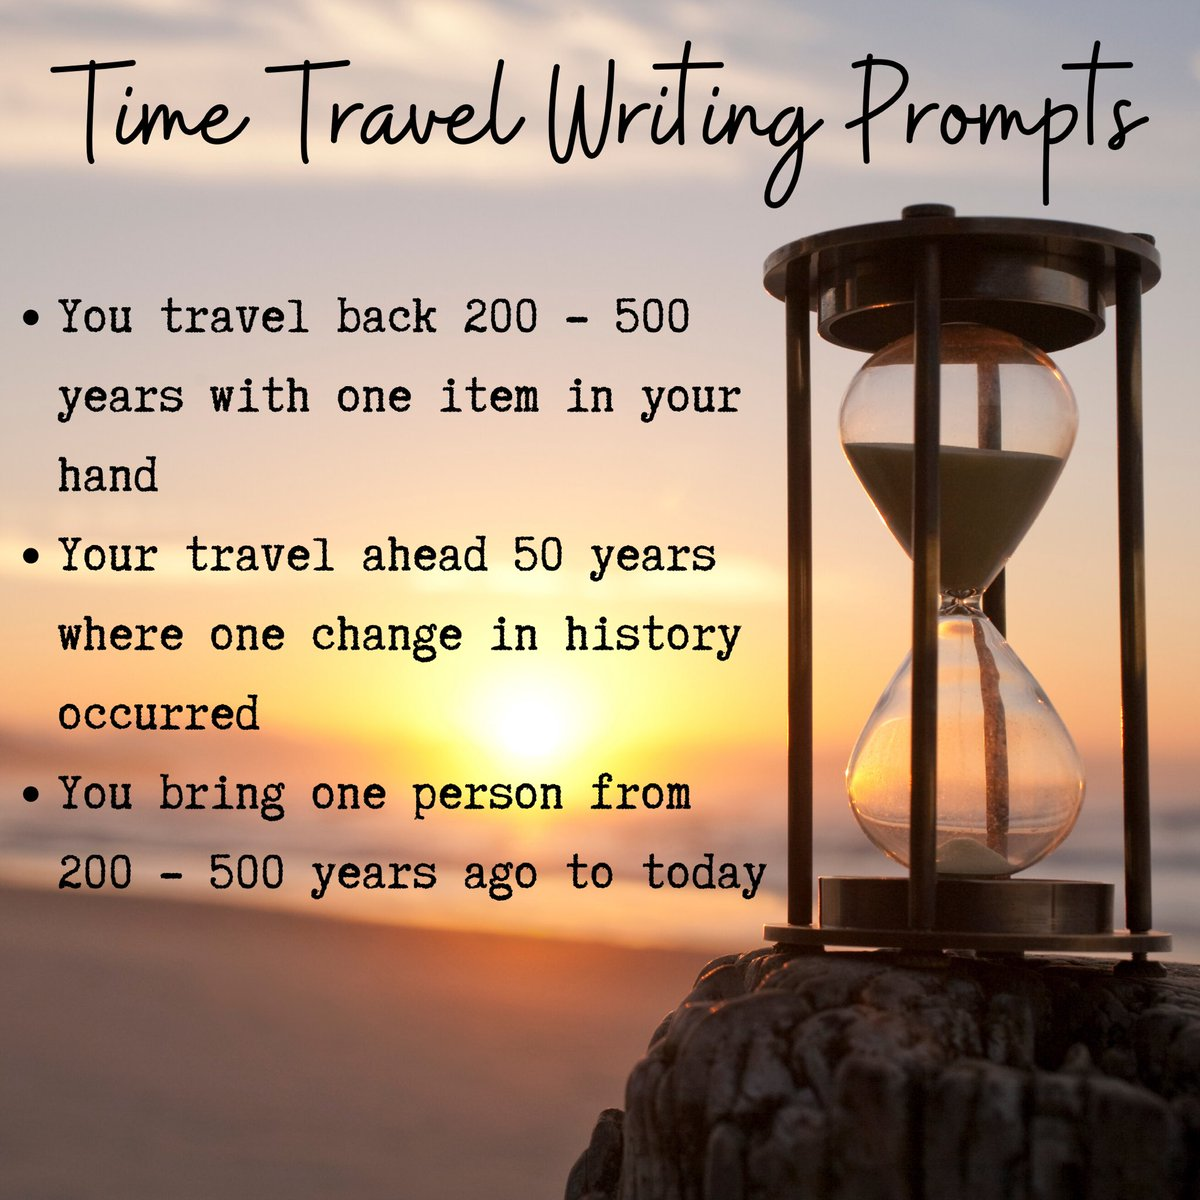 Looking for some fun #writingprompts to try? Give these #timetravel ones a whirl!  pic.twitter.com/ikORAXXl88